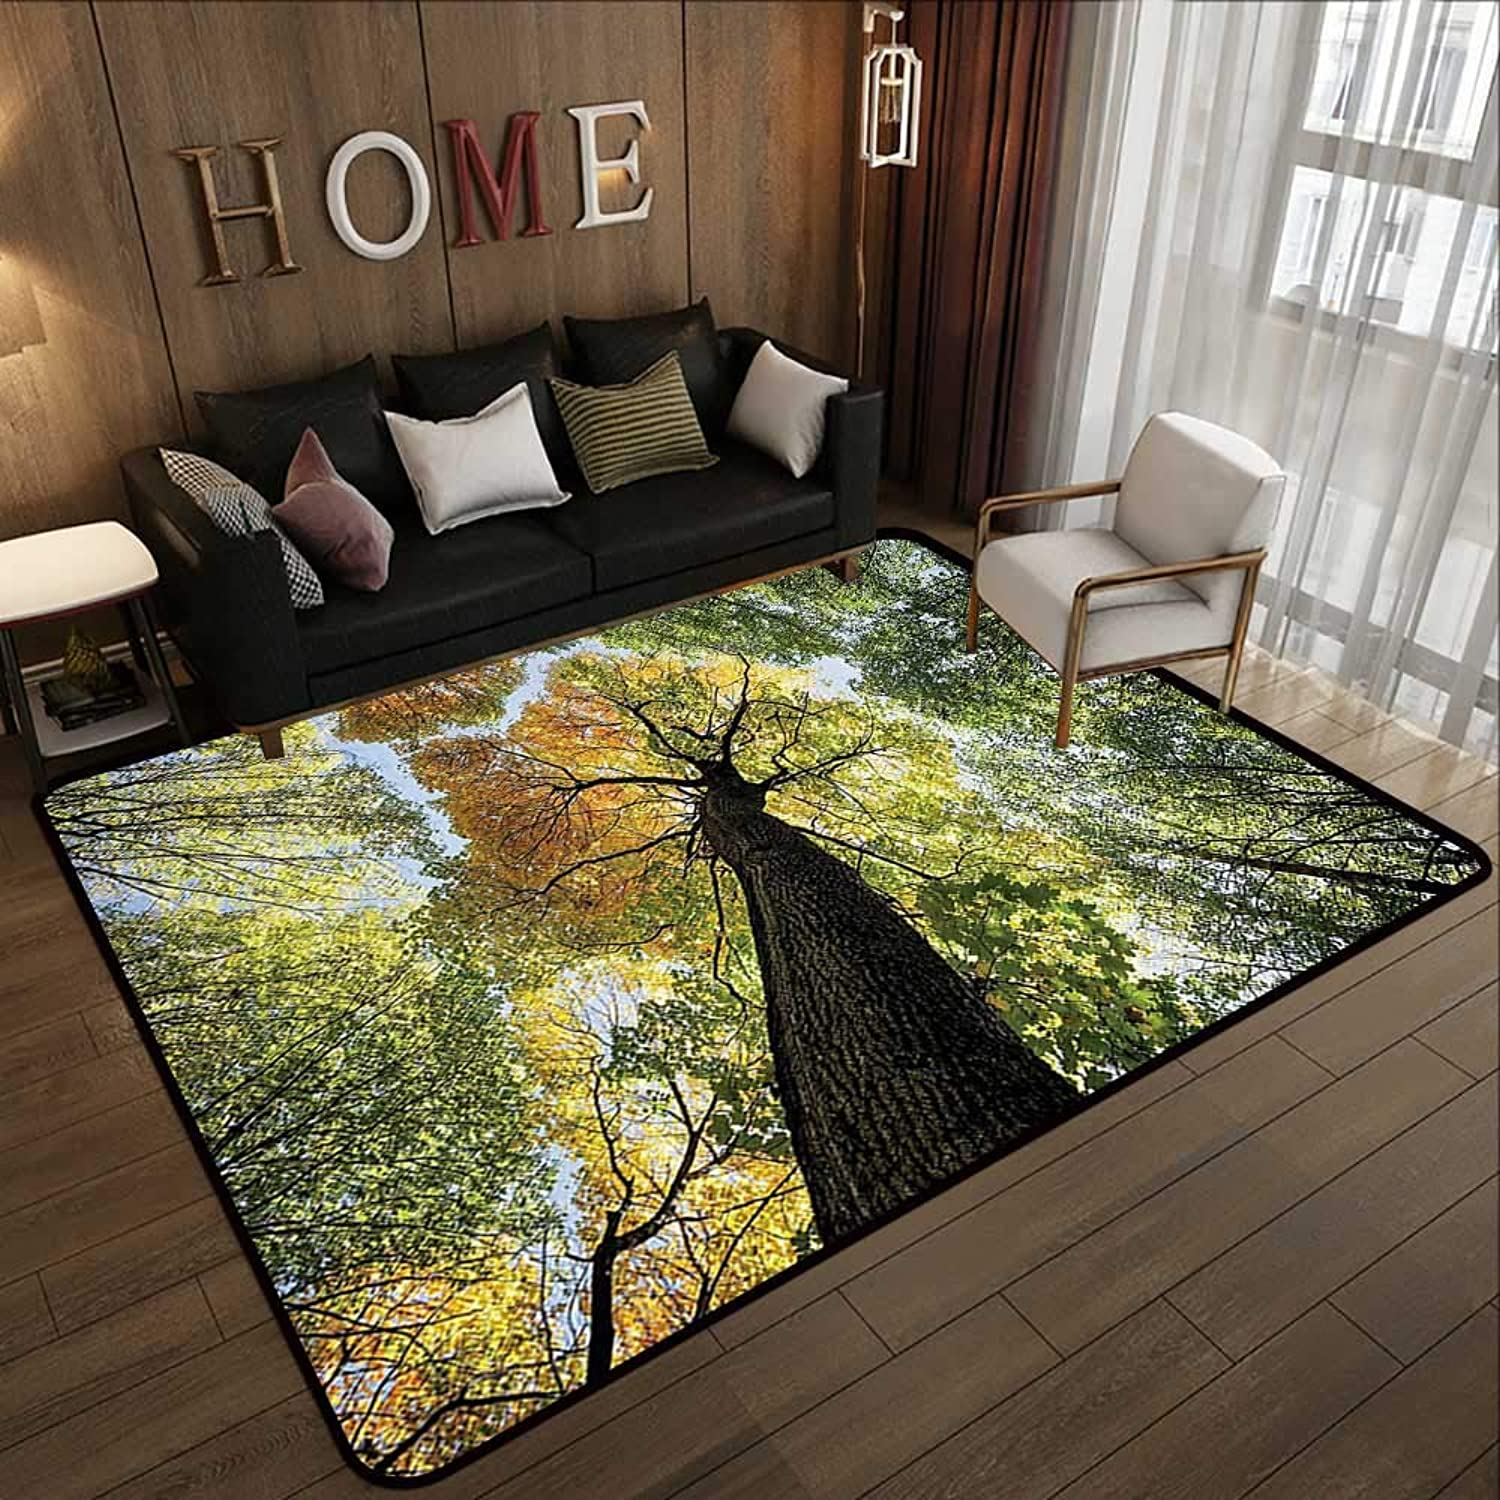 Carpet mat,Tree,Ancient Forest in Autumn Green Nature Deciduous Foliage Growth Eco,Light Green Dark Brown Yellow 35 x 59  Floor Mat Entrance Doormat